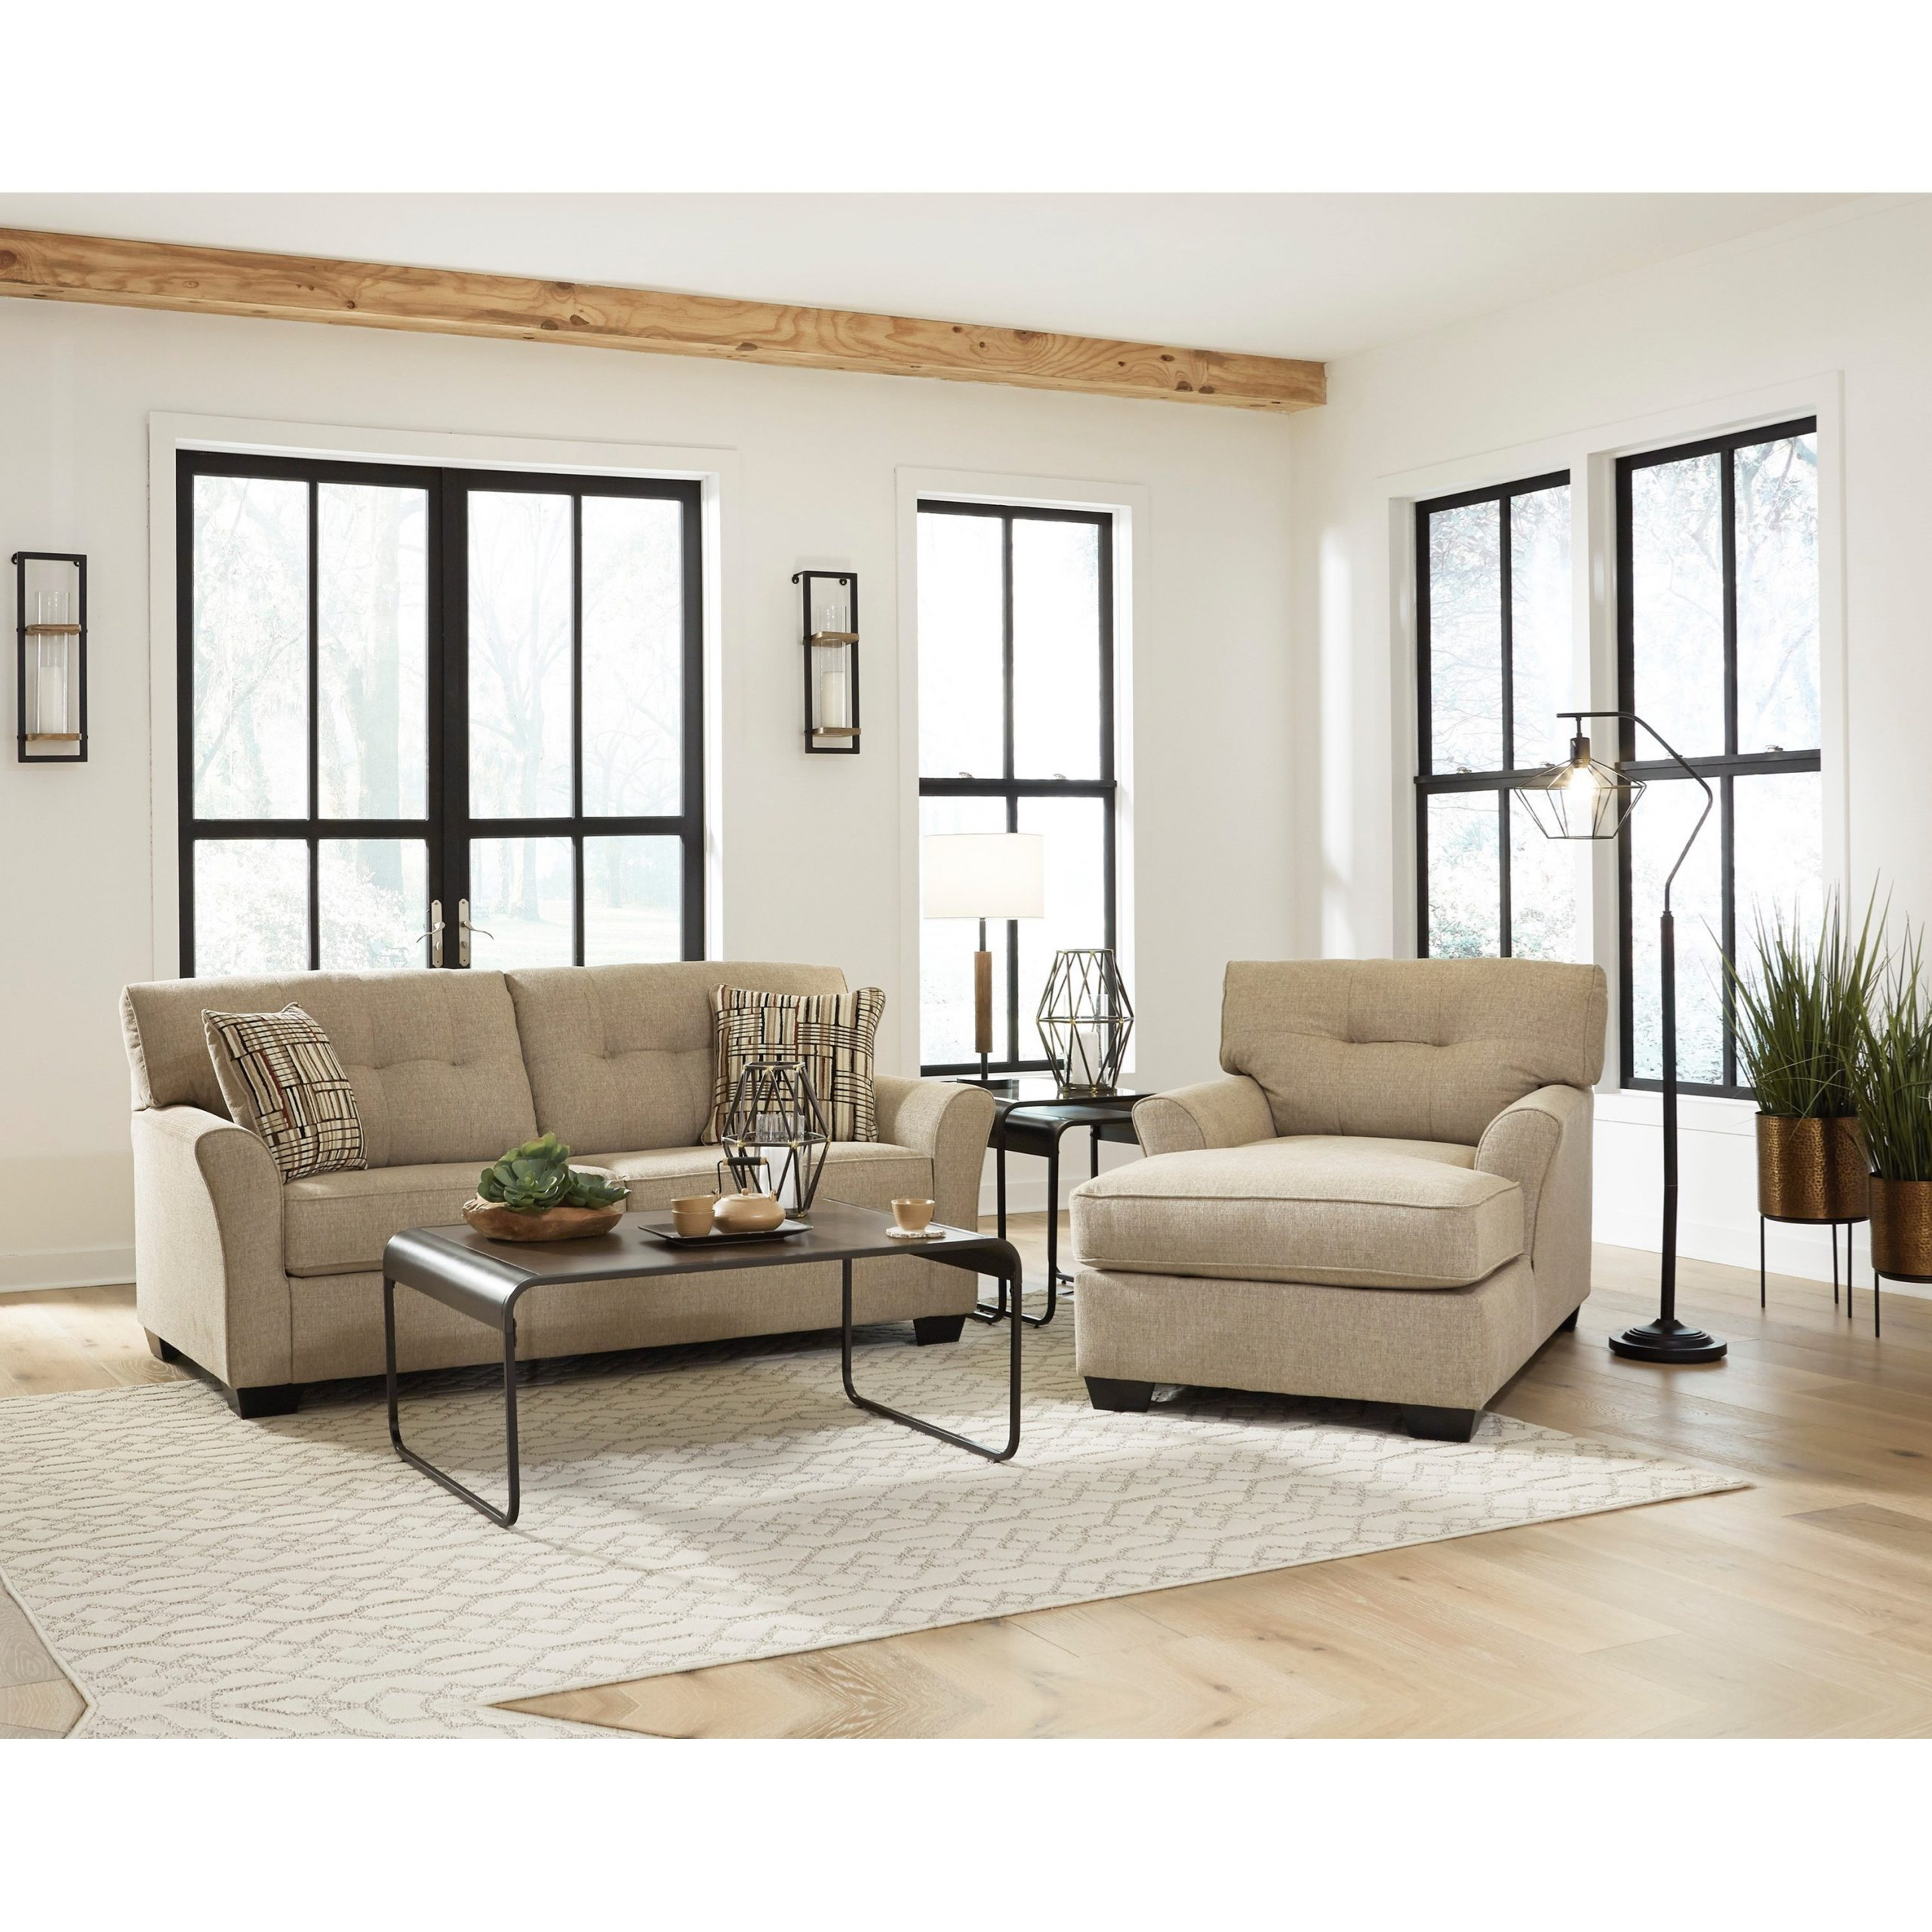 Ashley Ardmead Casual Sofa With Tufted Back Cushions For Casual Sofas And Chairs (View 4 of 15)